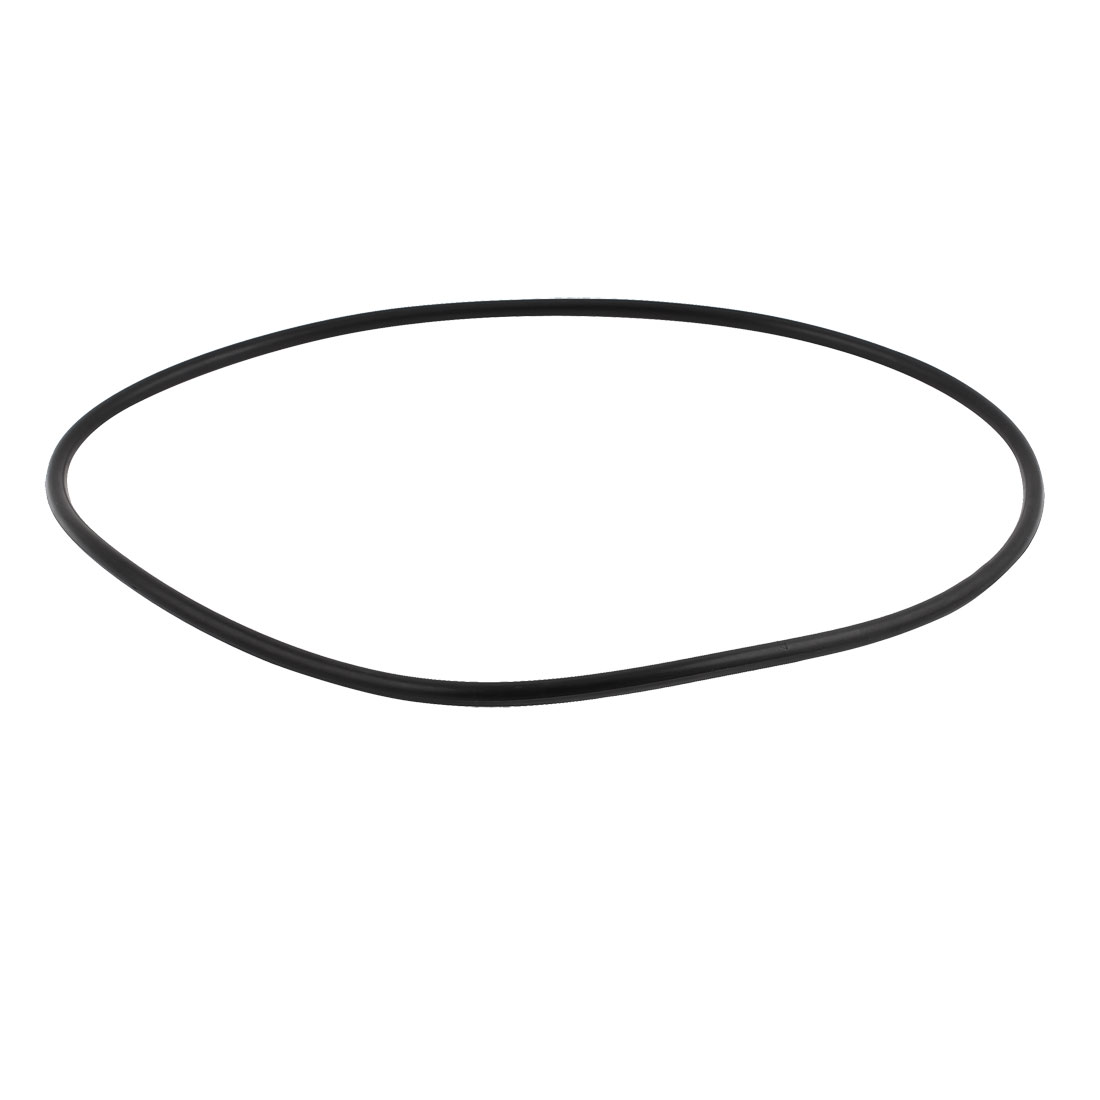 Black Universal O-Ring 345mm x 8.6mm BUNA-N Material Oil Seal Washers Grommets